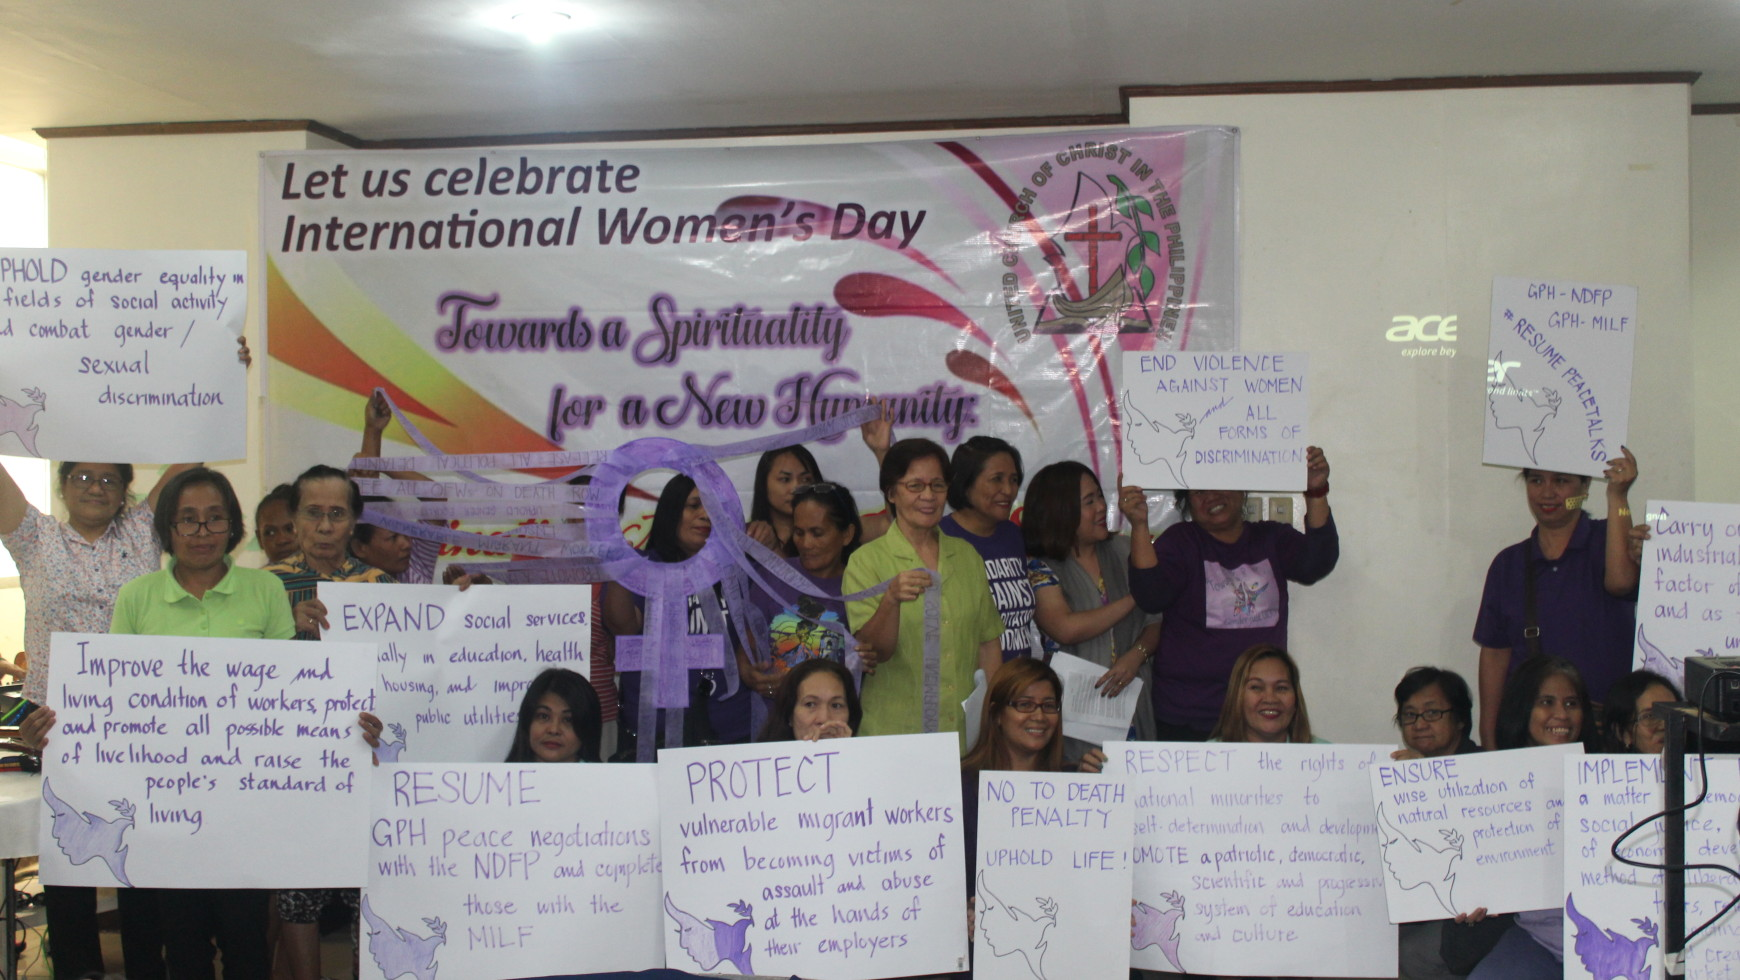 CALL TO ACTION ON INTERNATIONAL WOMEN'S DAY CELEBRATION 2017